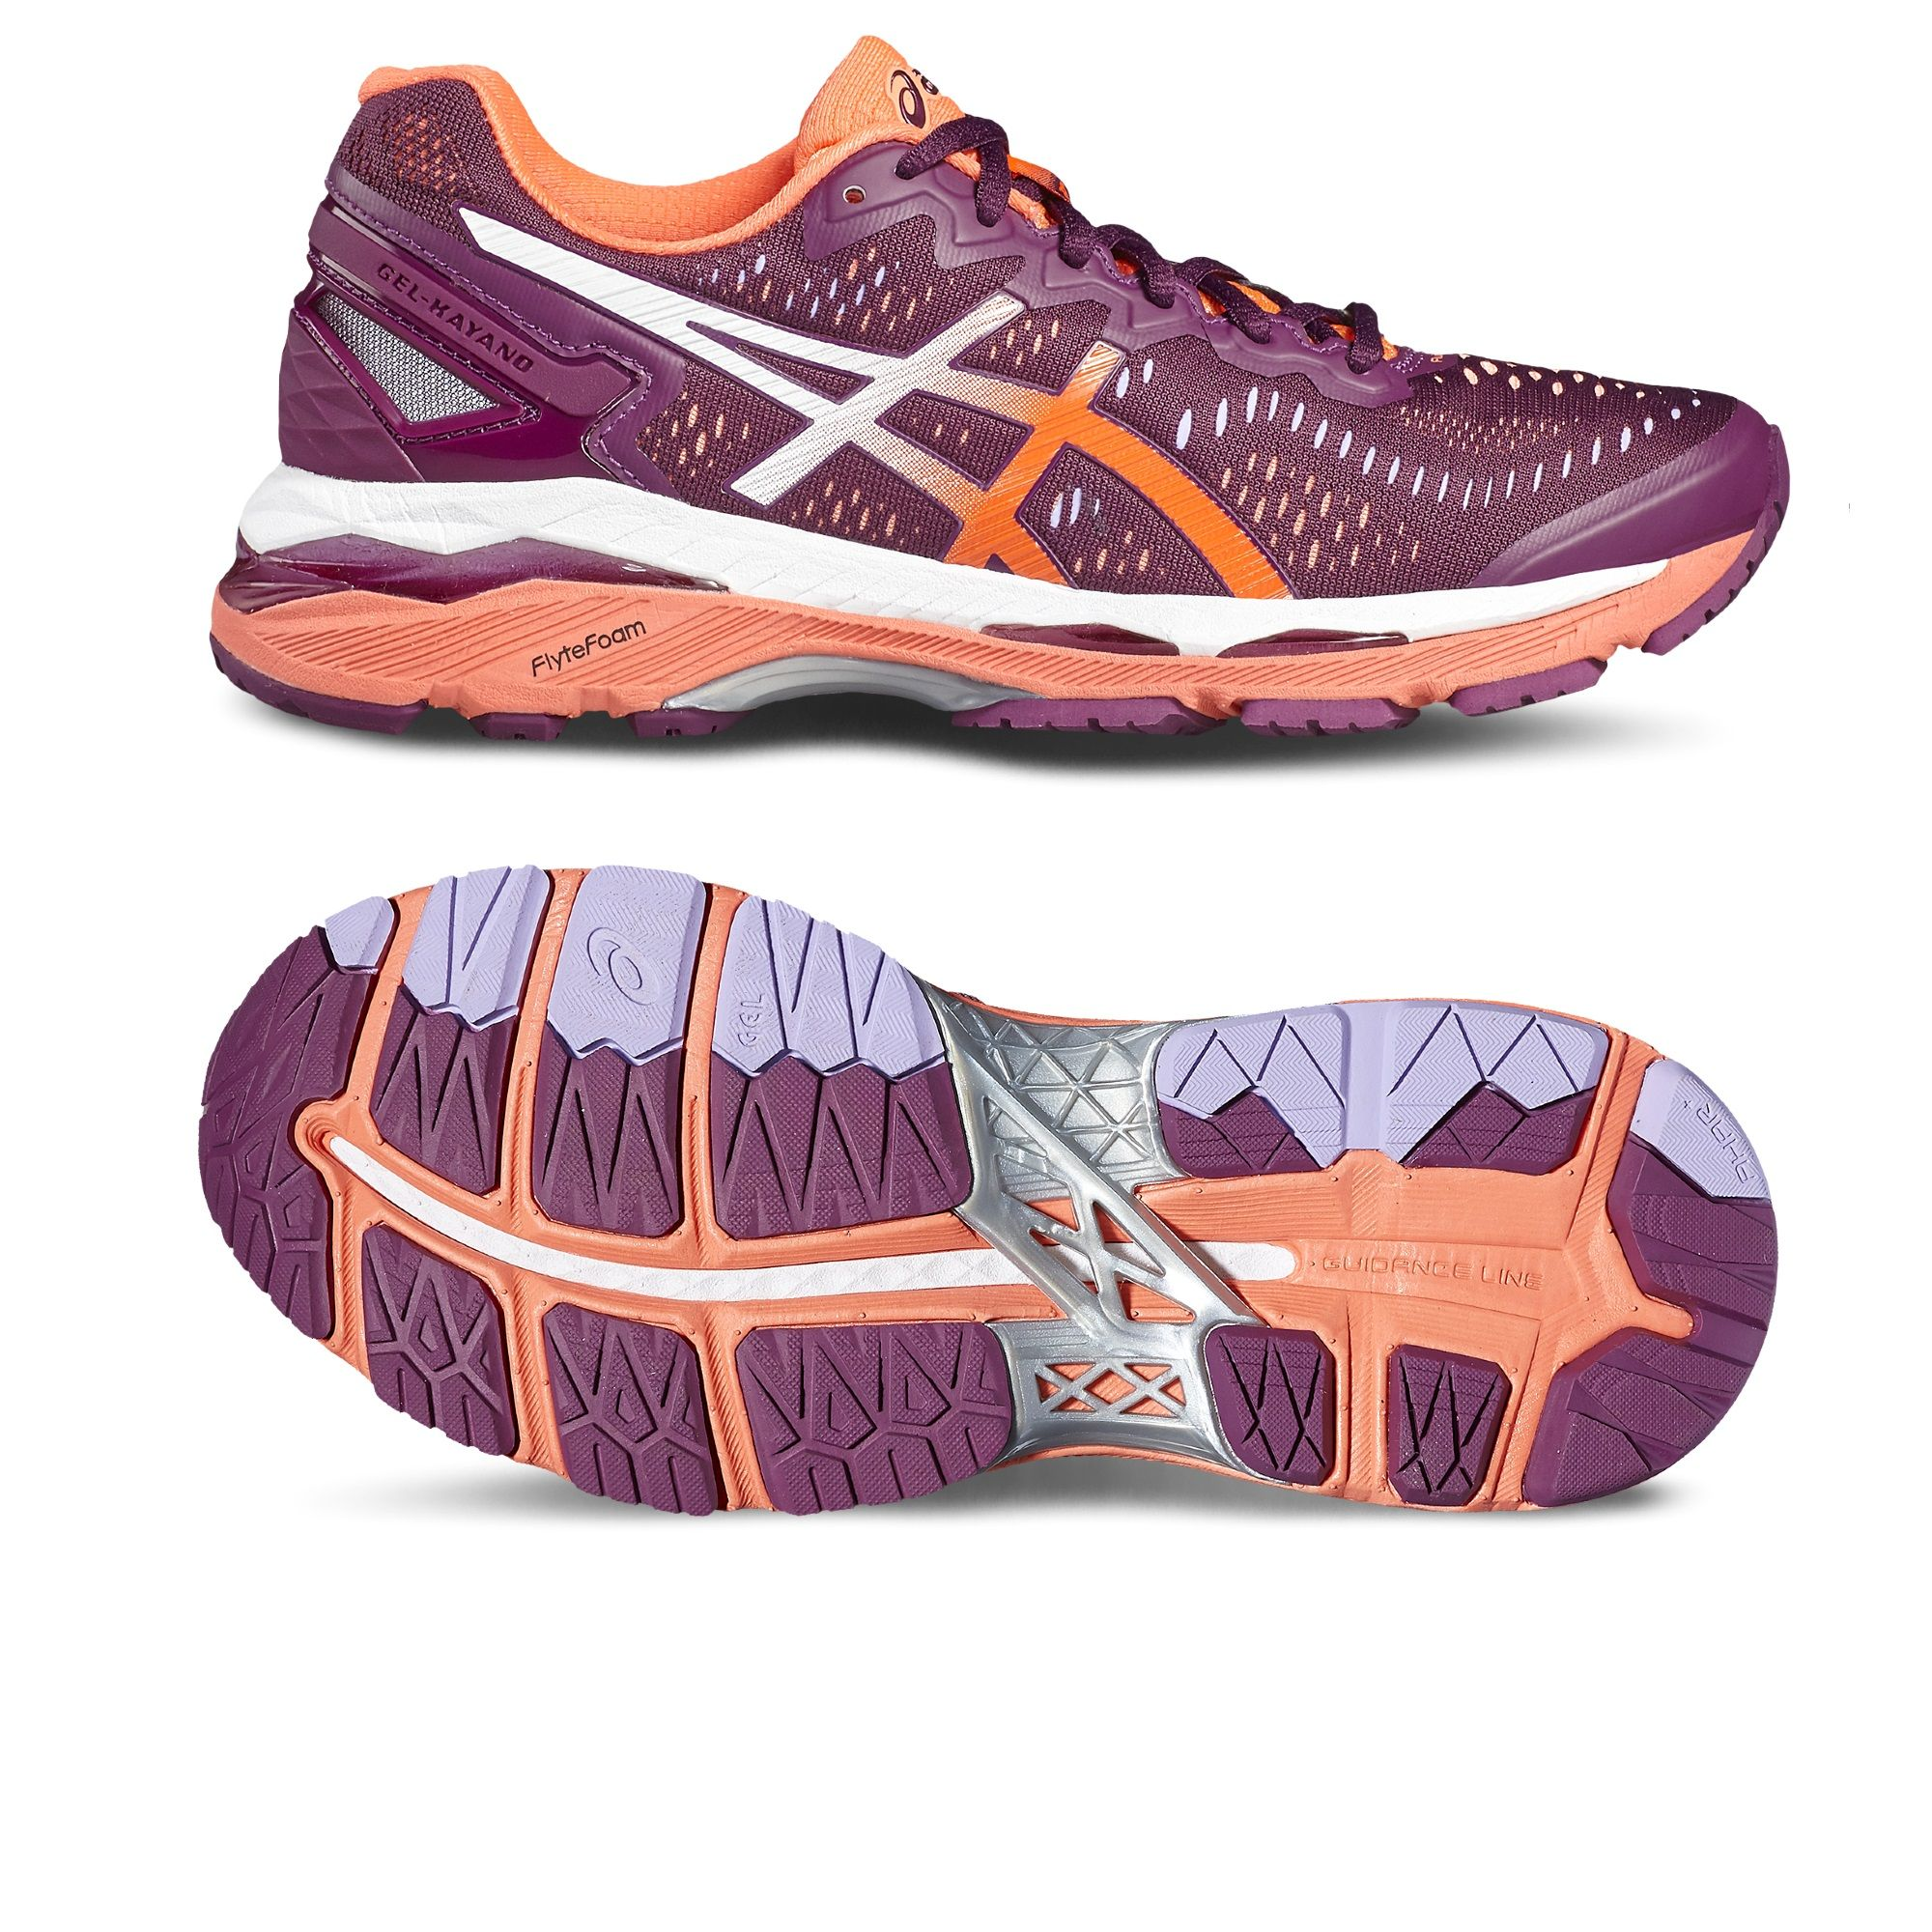 Comfy Gel Running Shoes Size